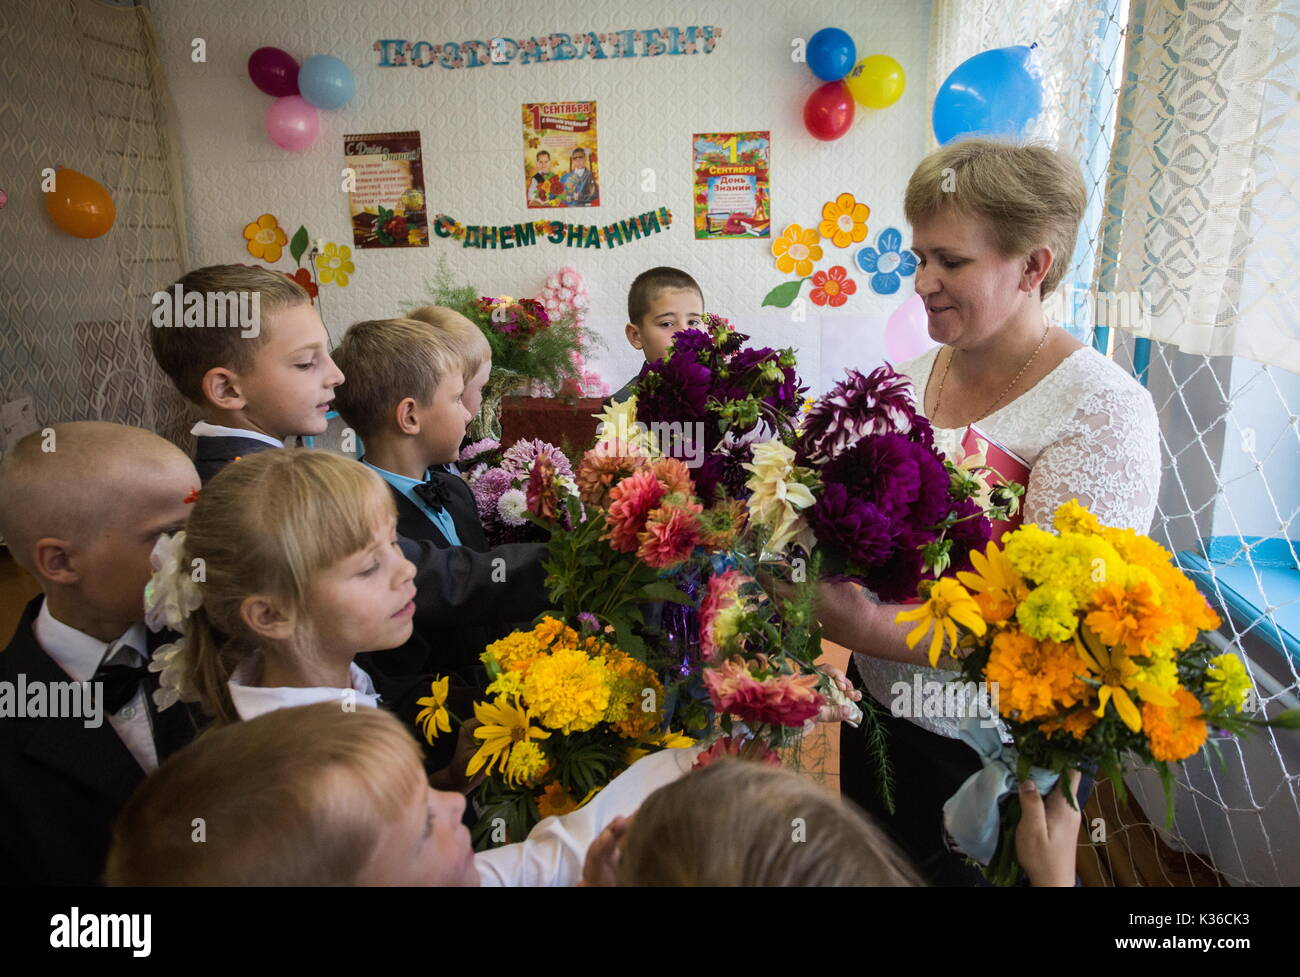 For what they crucified the teacher from Omsk